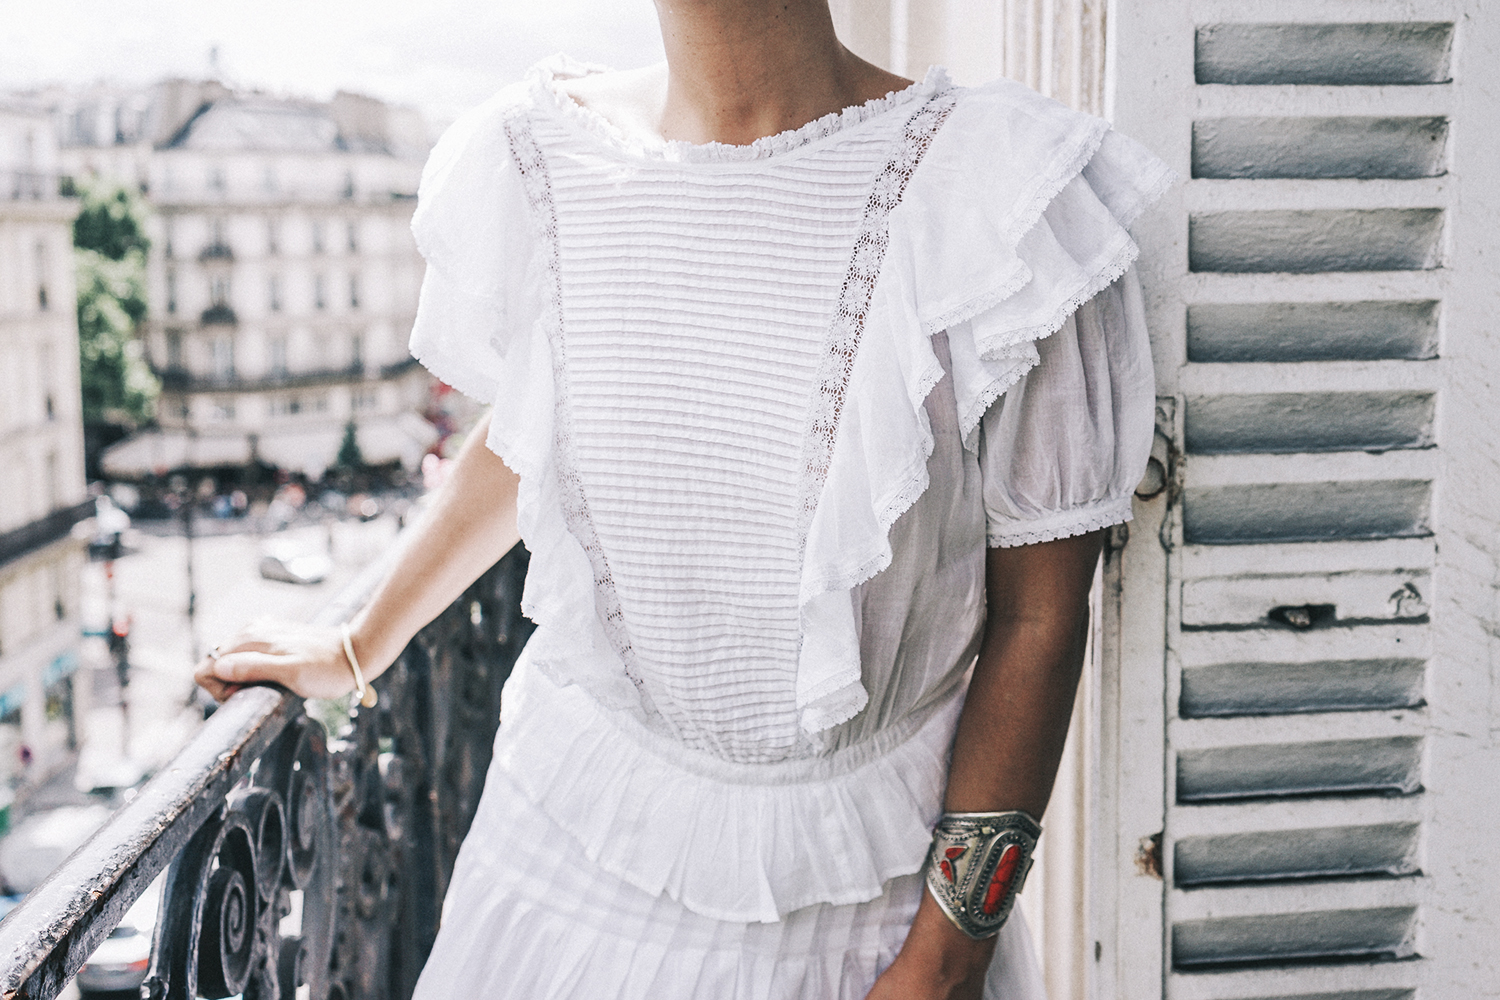 Home_Away-Isabel_Marant_Dress-Outfit-Paris-Collage_Vintage-40